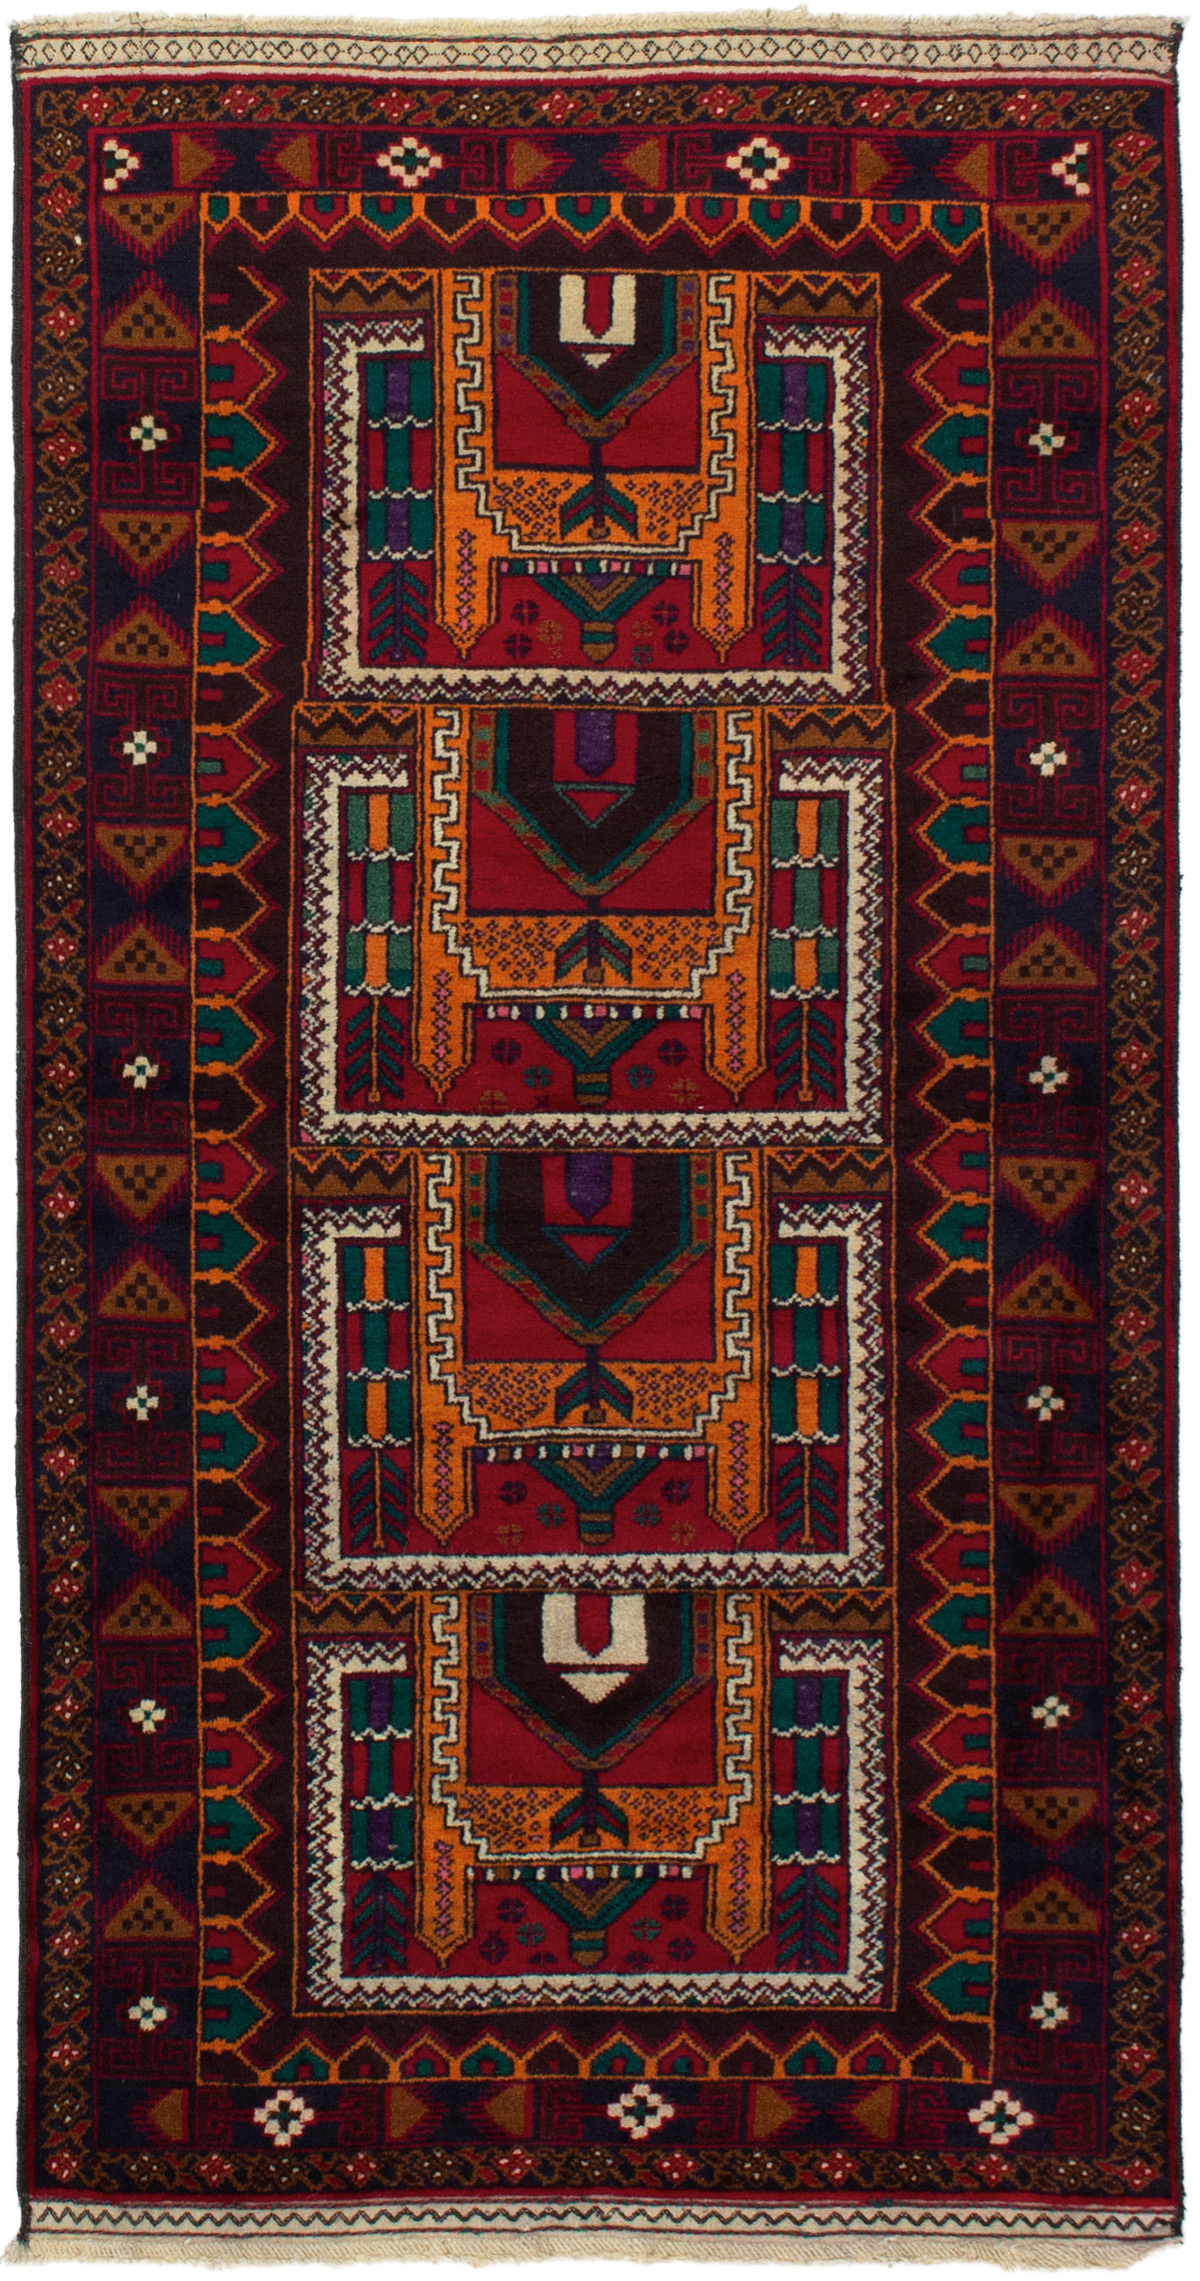 """Hand-knotted Teimani Red Wool Rug 3'5"""" x 6'9""""  Size: 3'5"""" x 6'9"""""""